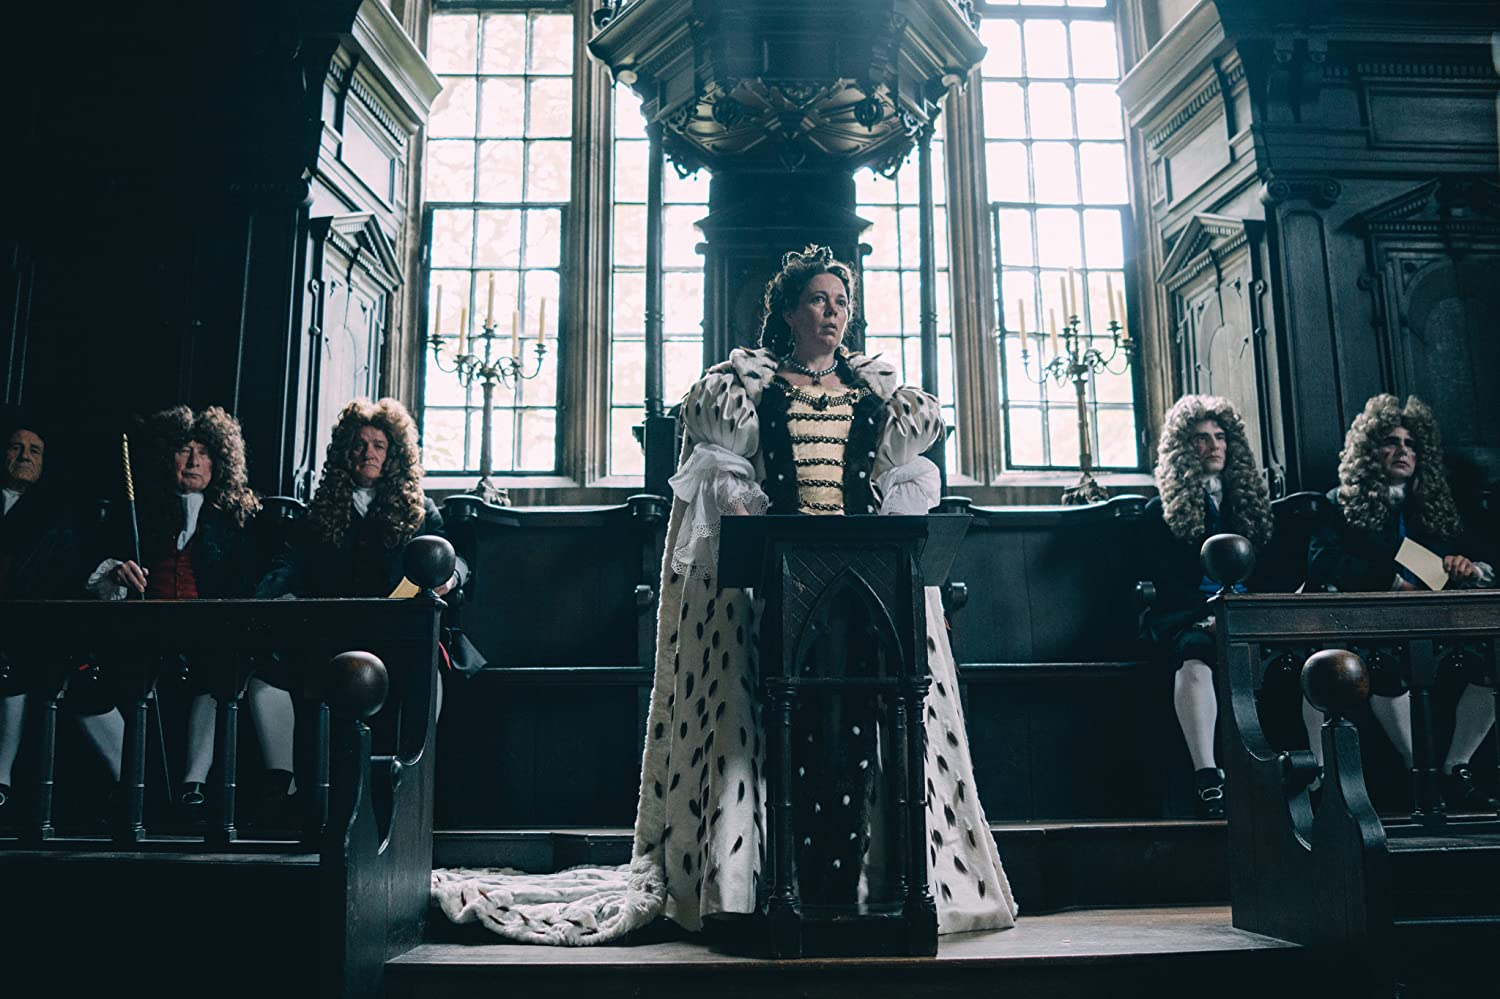 Olivia Colman in The Favourite (2018)